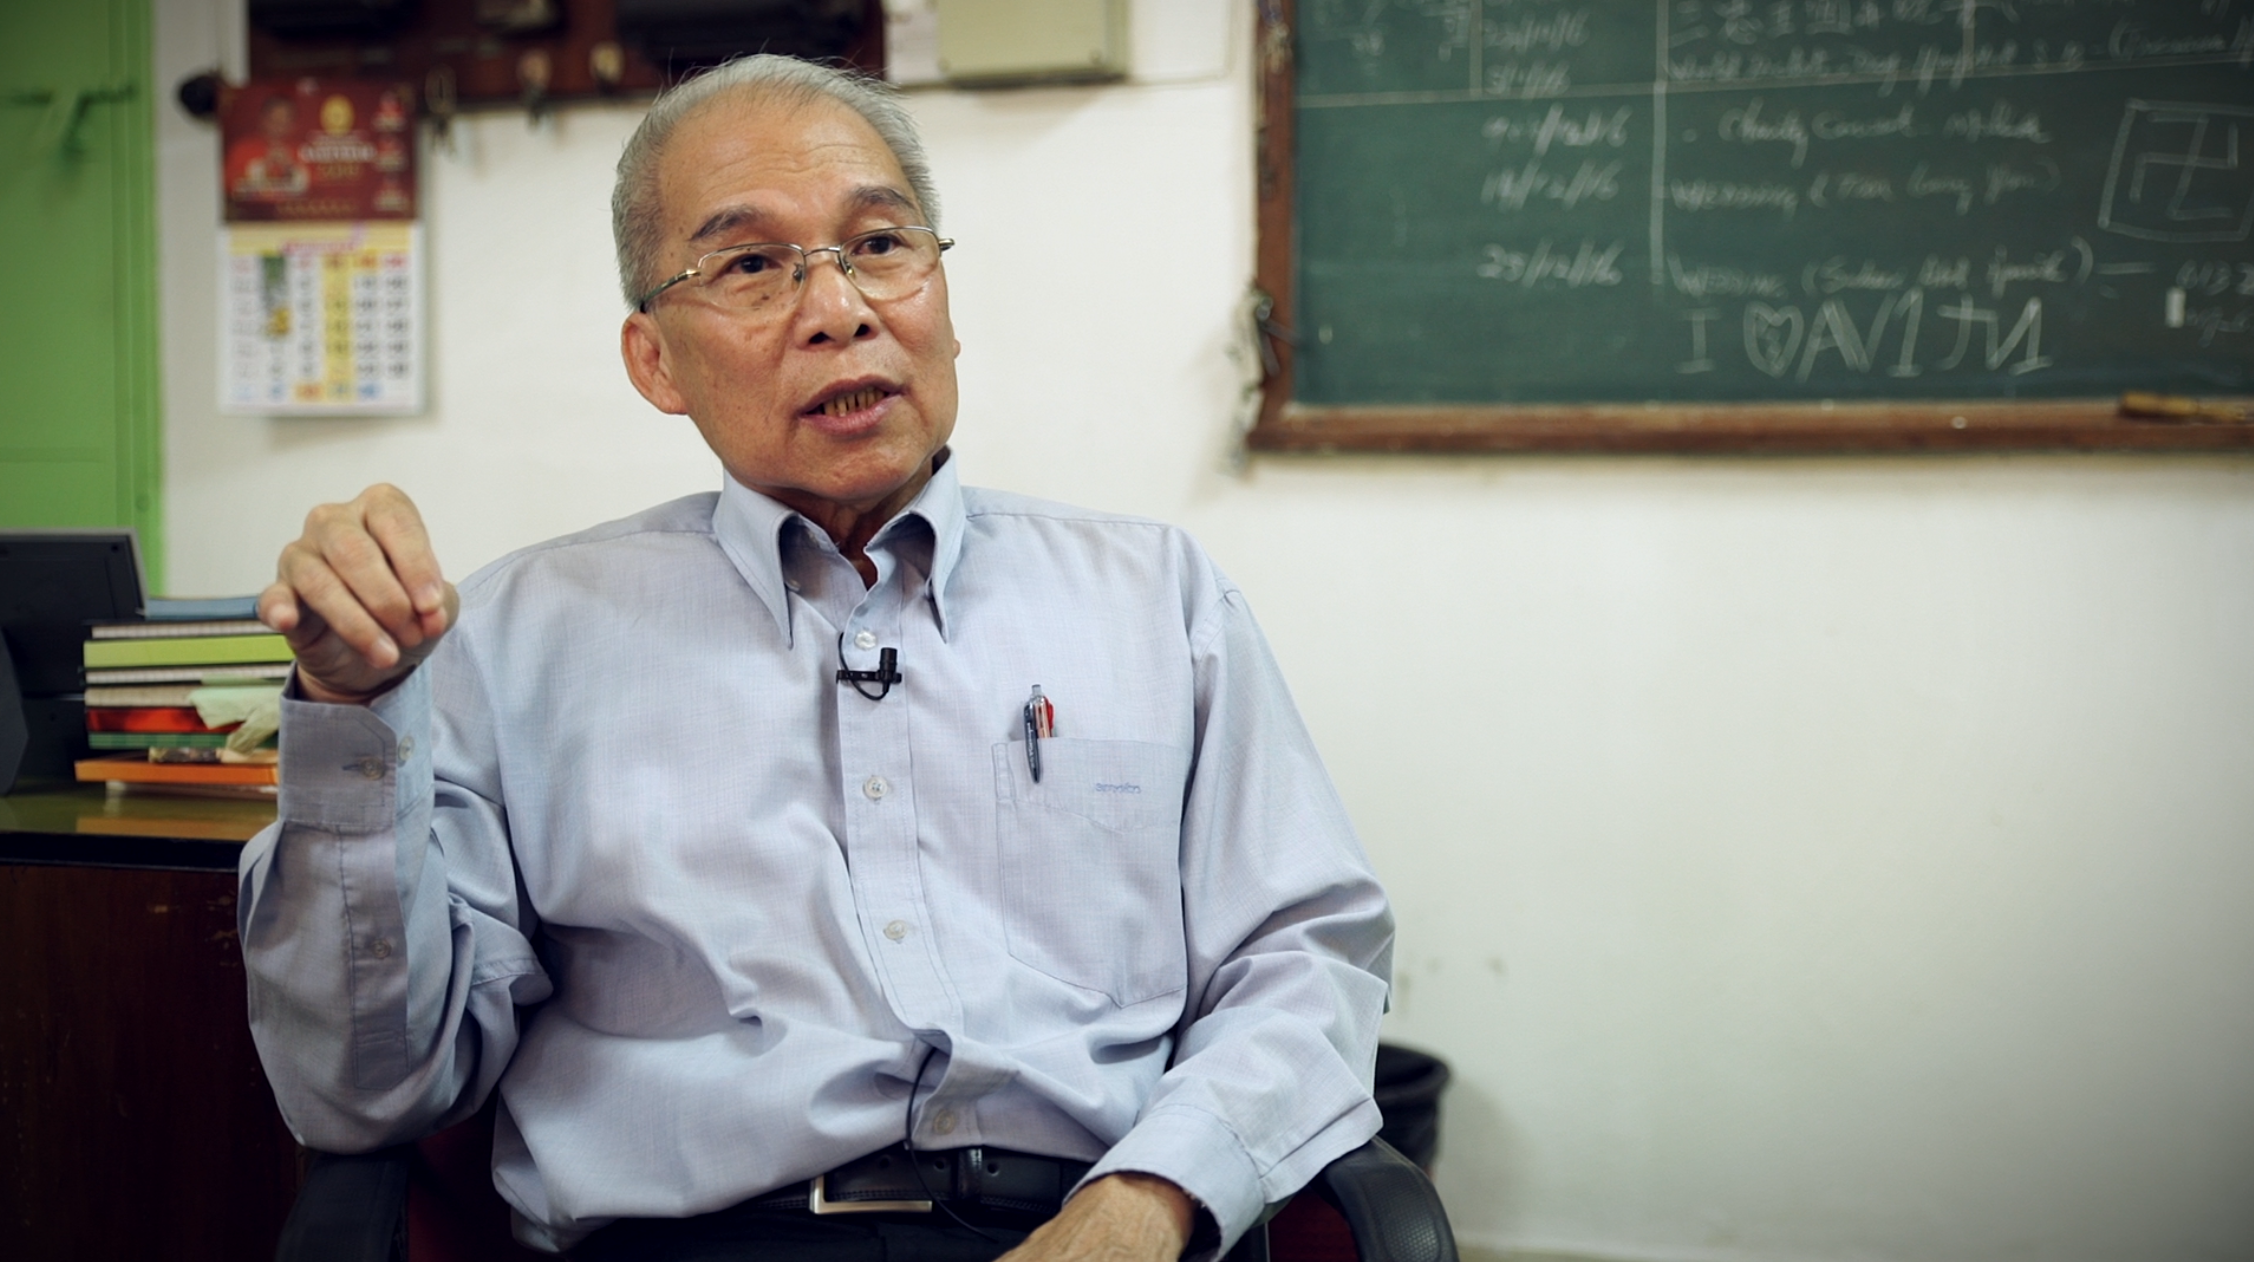 Lim Thiam Chye (photo by Lian Ling Siong)